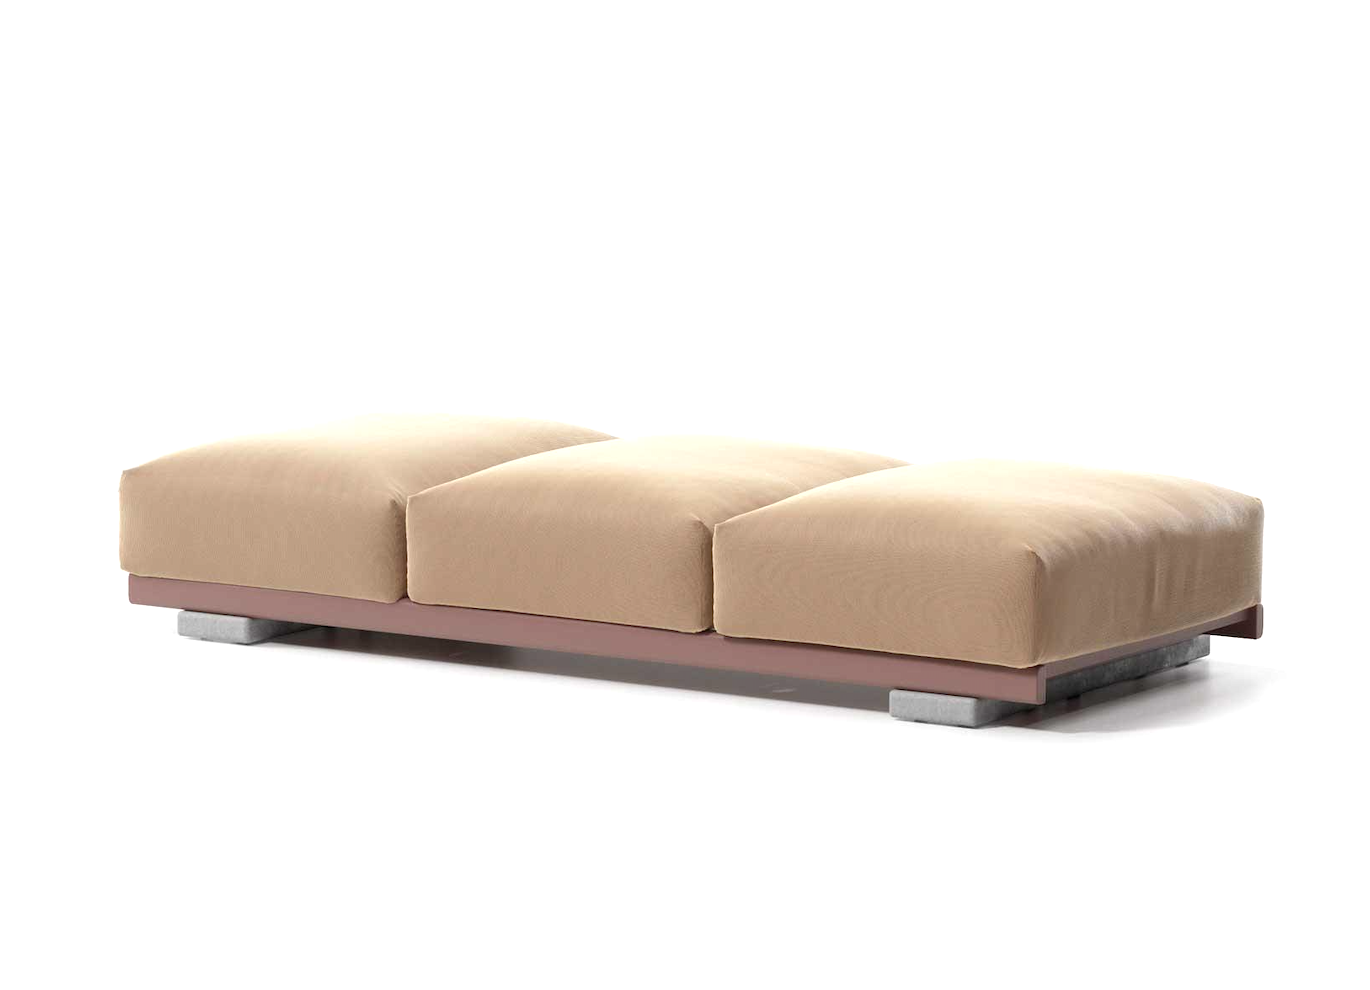 Product Image Molo 3 Seat Bench